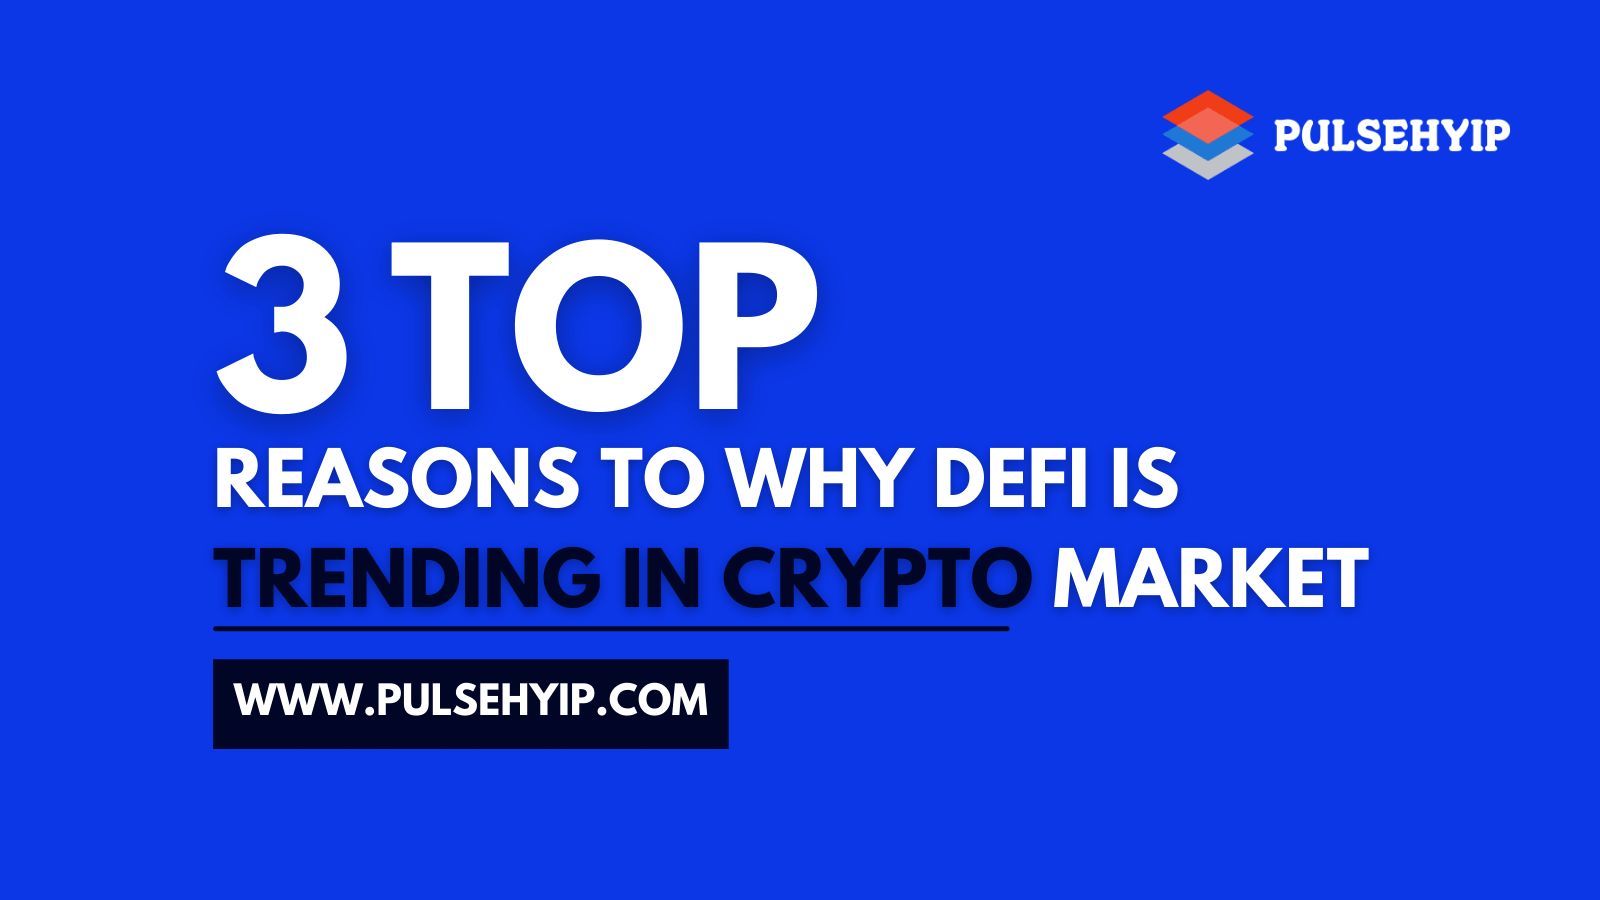 Top 3 Reasons Why DeFi is Trending in Crypto Market